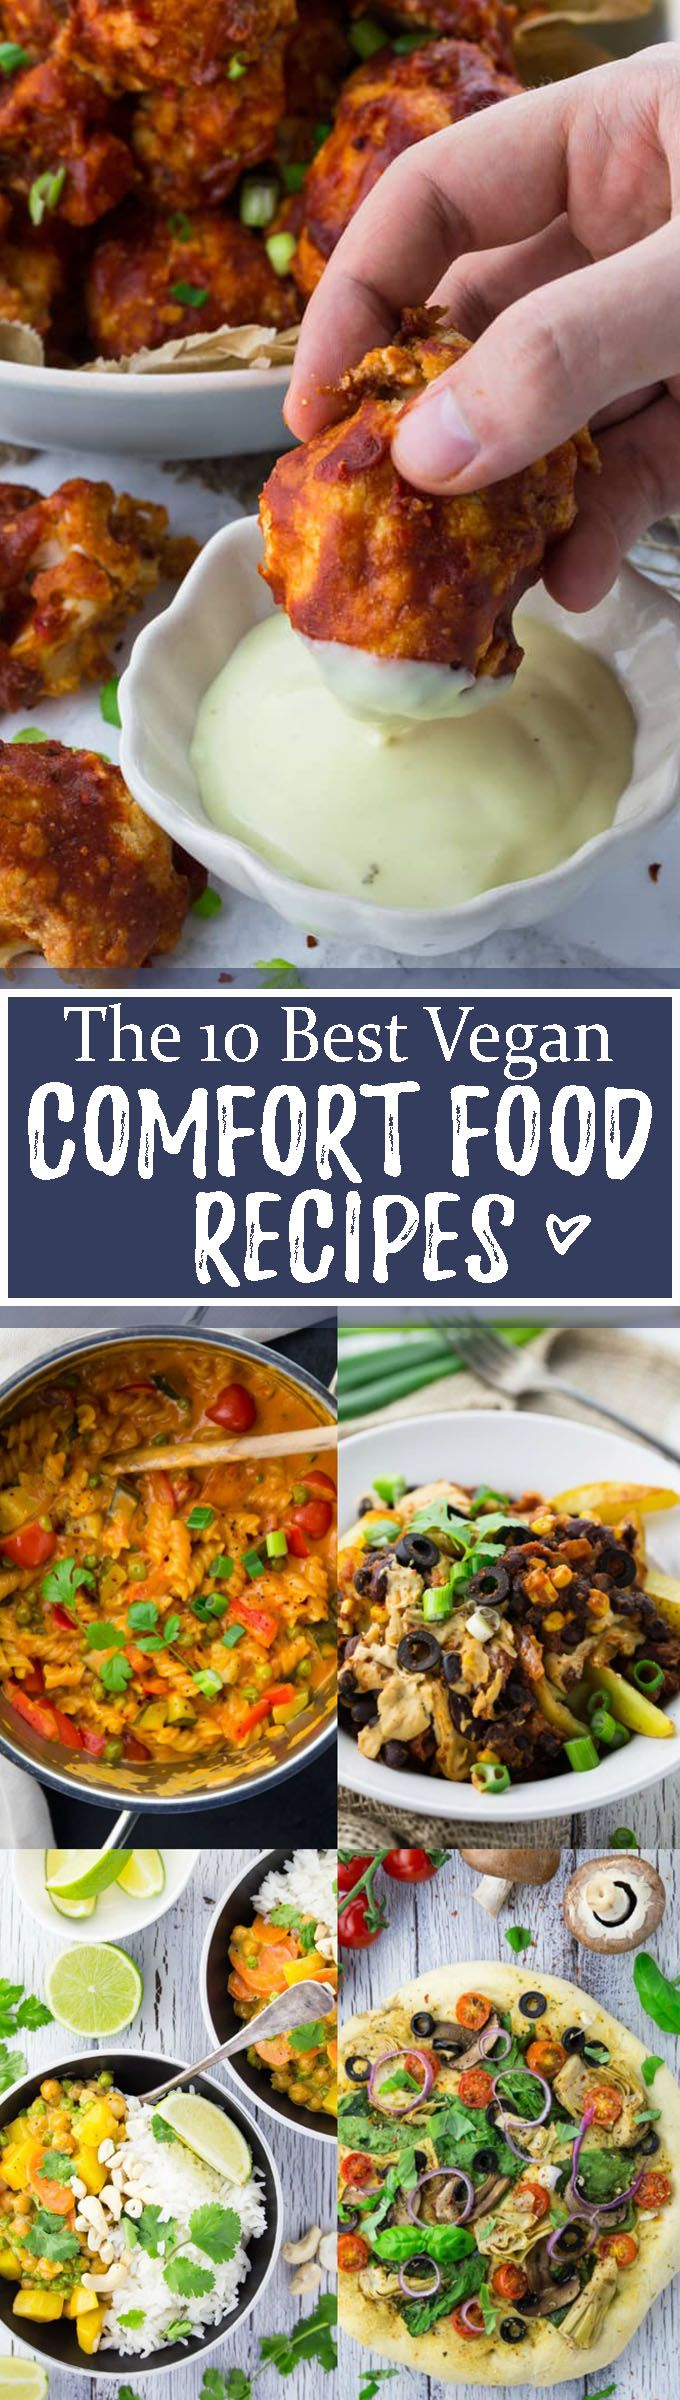 #Vegan Sometimes we just need some delicious comfort food! Isn't it nice to come home after a long and hard day and enjoy a yummy and comforting meal?! This roundup includes some of my favorite vegan comfort recipes like vegan one pot pasta, lasagna, vegan pizza, vegan curry, vegan chili cheese fries, and cauliflower wings. Big YUM!! <3 | veganheaven.org